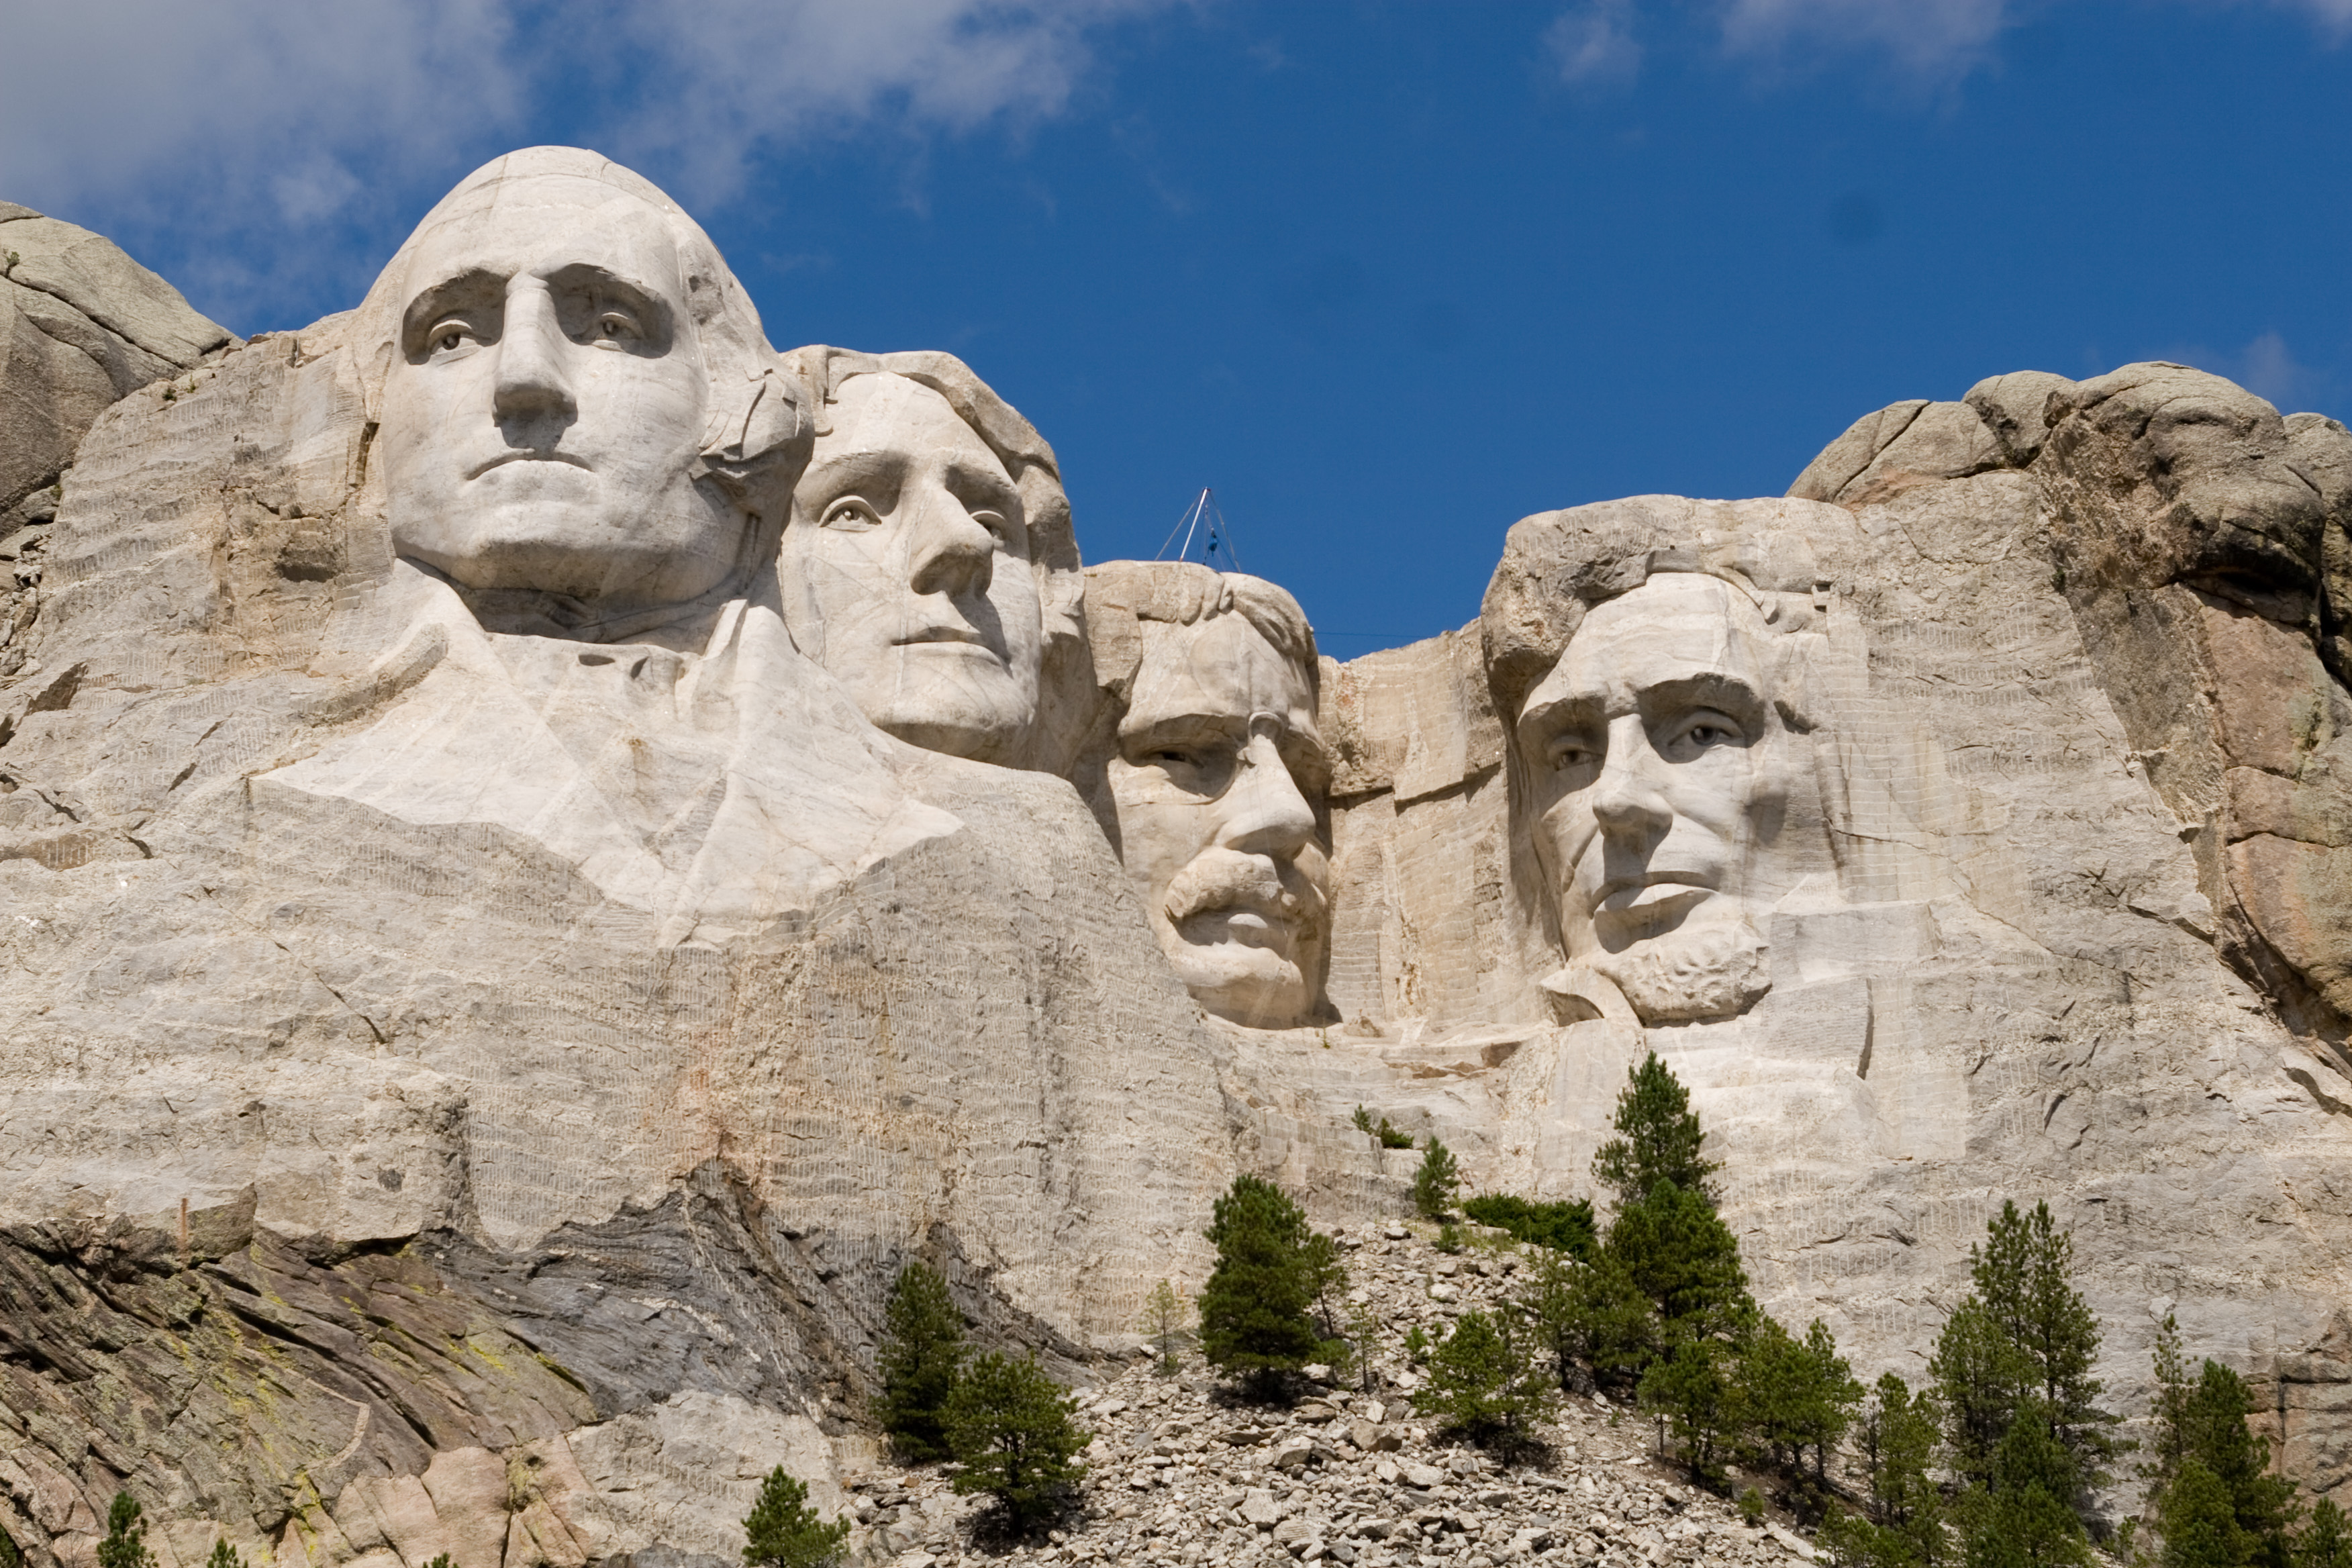 Worksheet The Mount Rushmore mount rushmore by adamswi